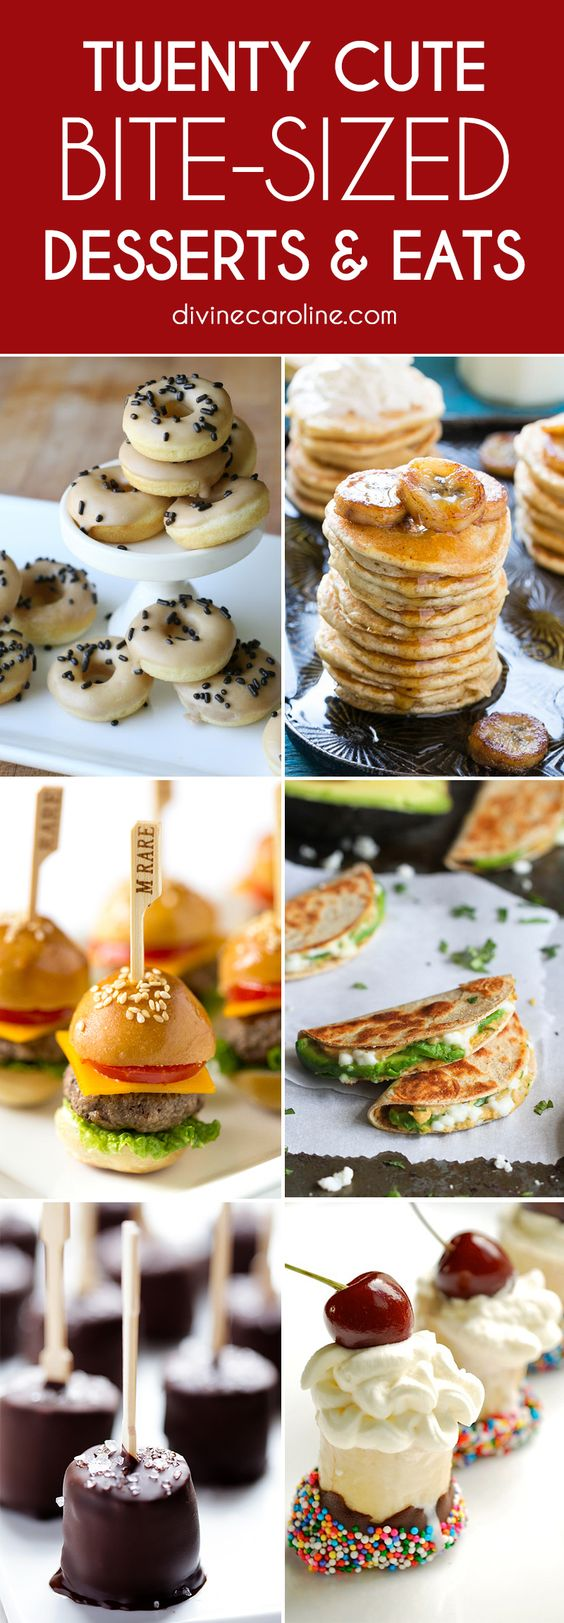 Little is the new big thing! From undeniably cute little sandwiches and itty-bitty burgers to tiny doughnuts, you will adore these absolutely darling bite-sized desserts, snacks, and dishes. - DivineCaroline.com